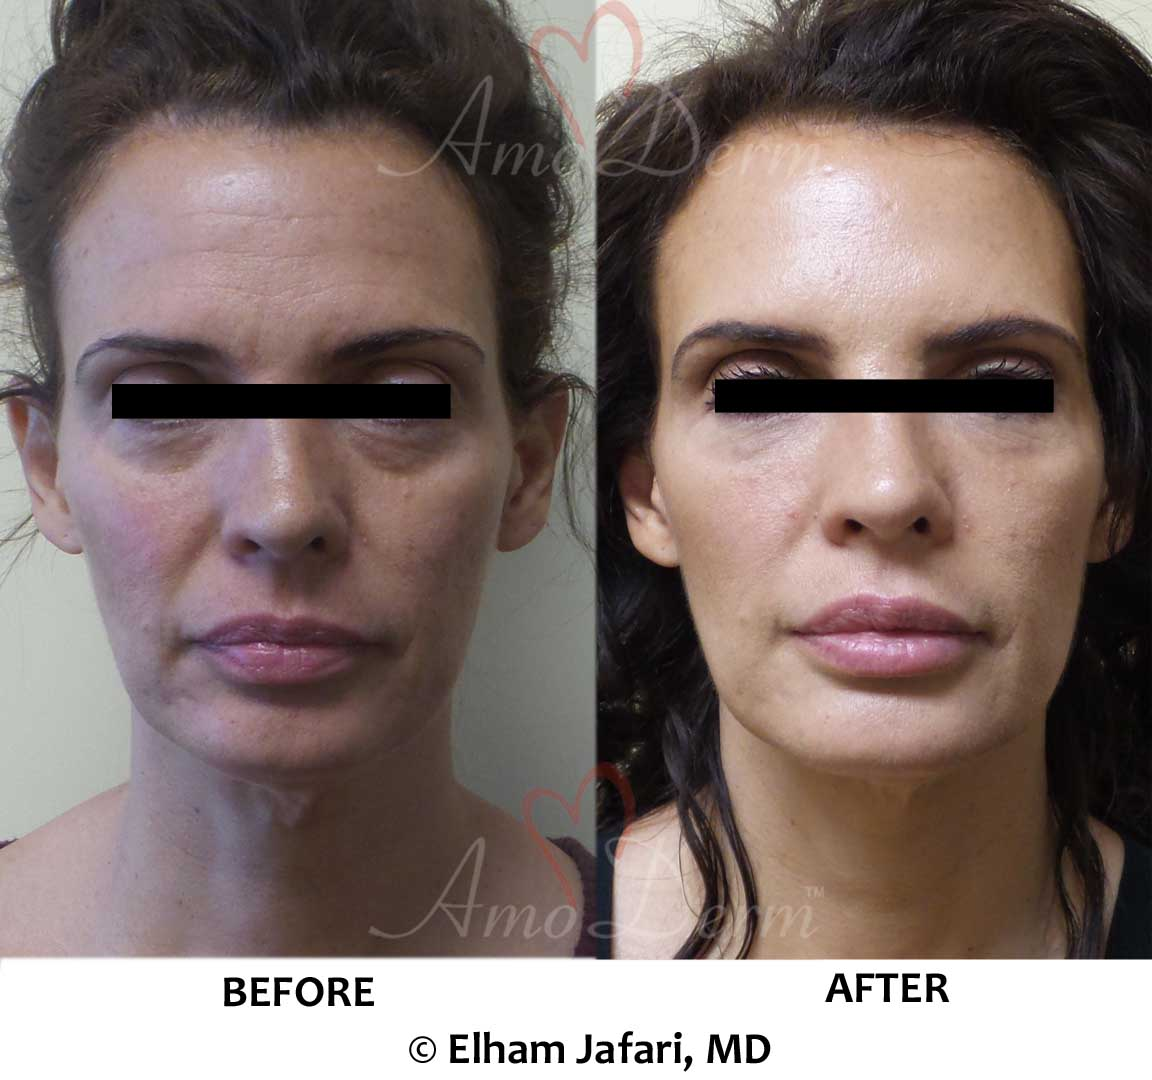 Liquid Facelift with Botox (or Dysport or Xeomin) in forehead and filler injection in cheeks and under eyes